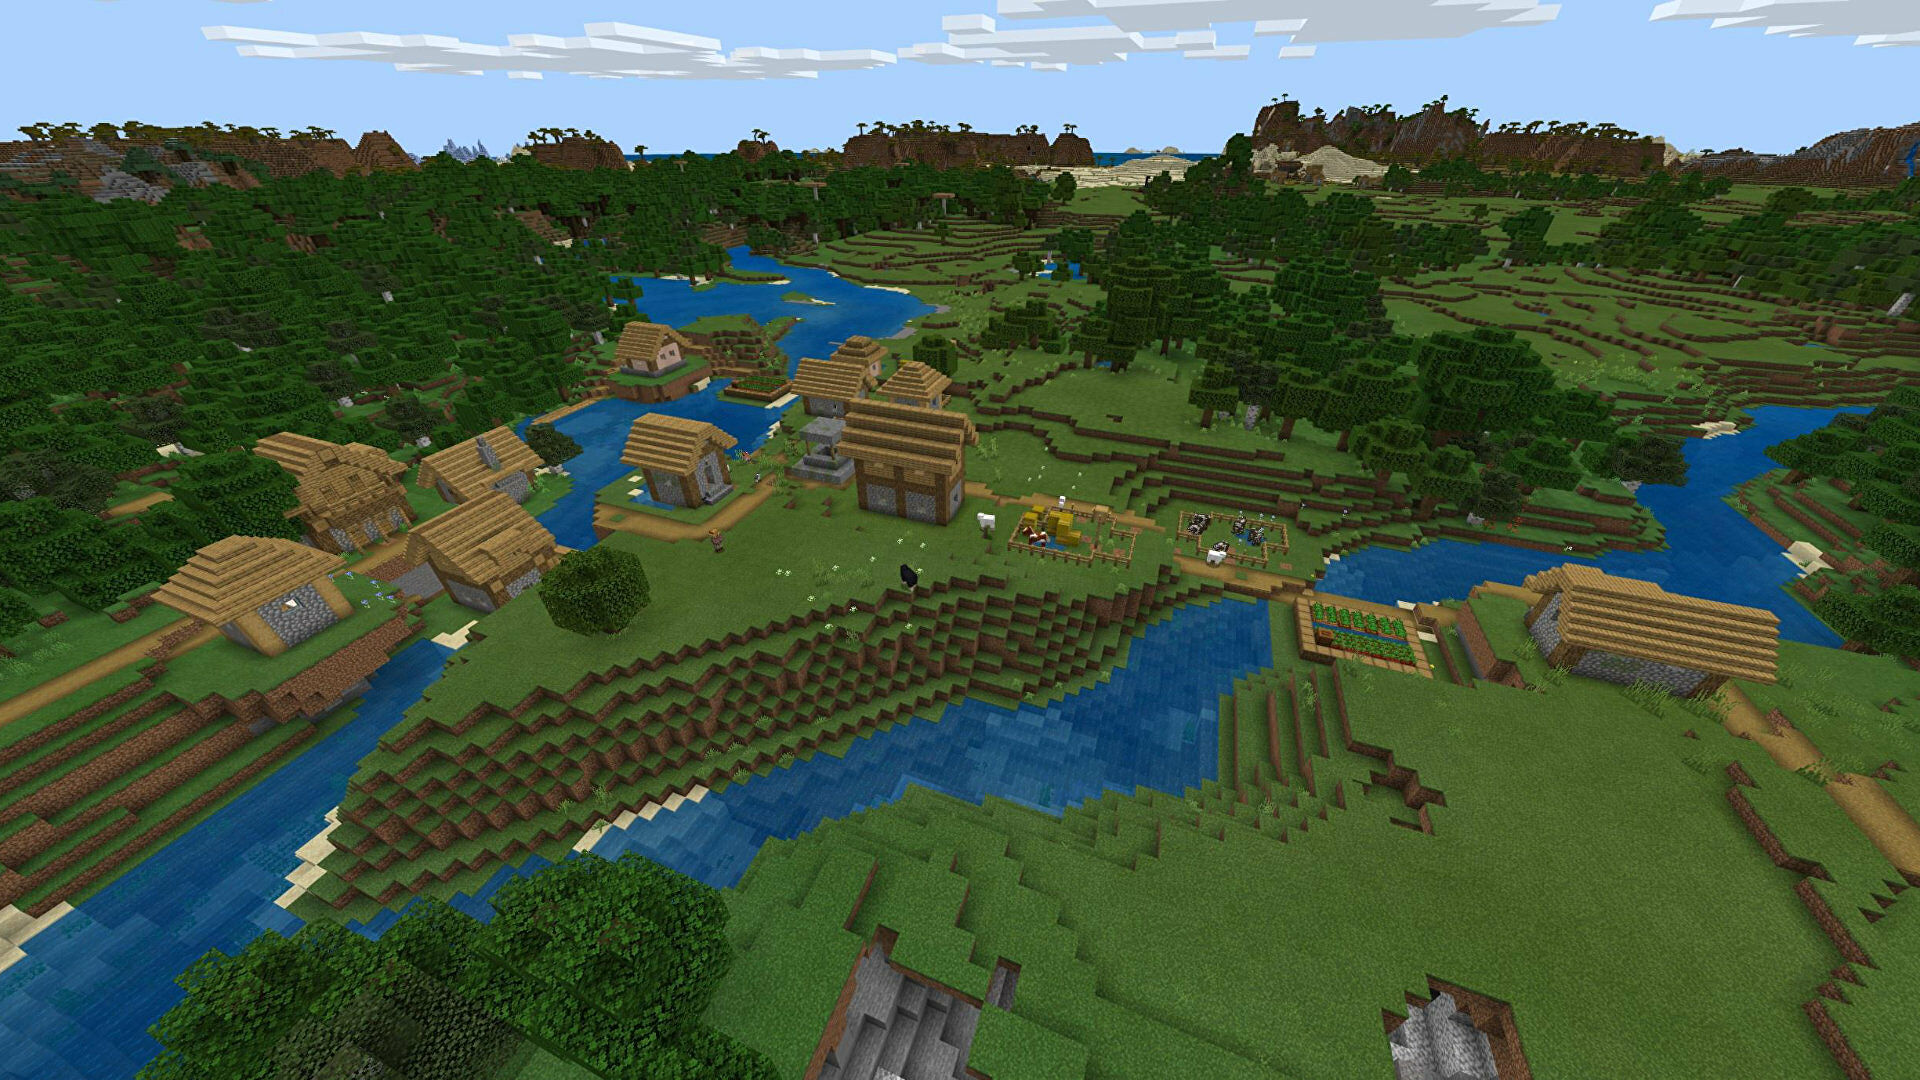 A Minecraft Bedrock screenshot of a new world created with the seed -171182221.